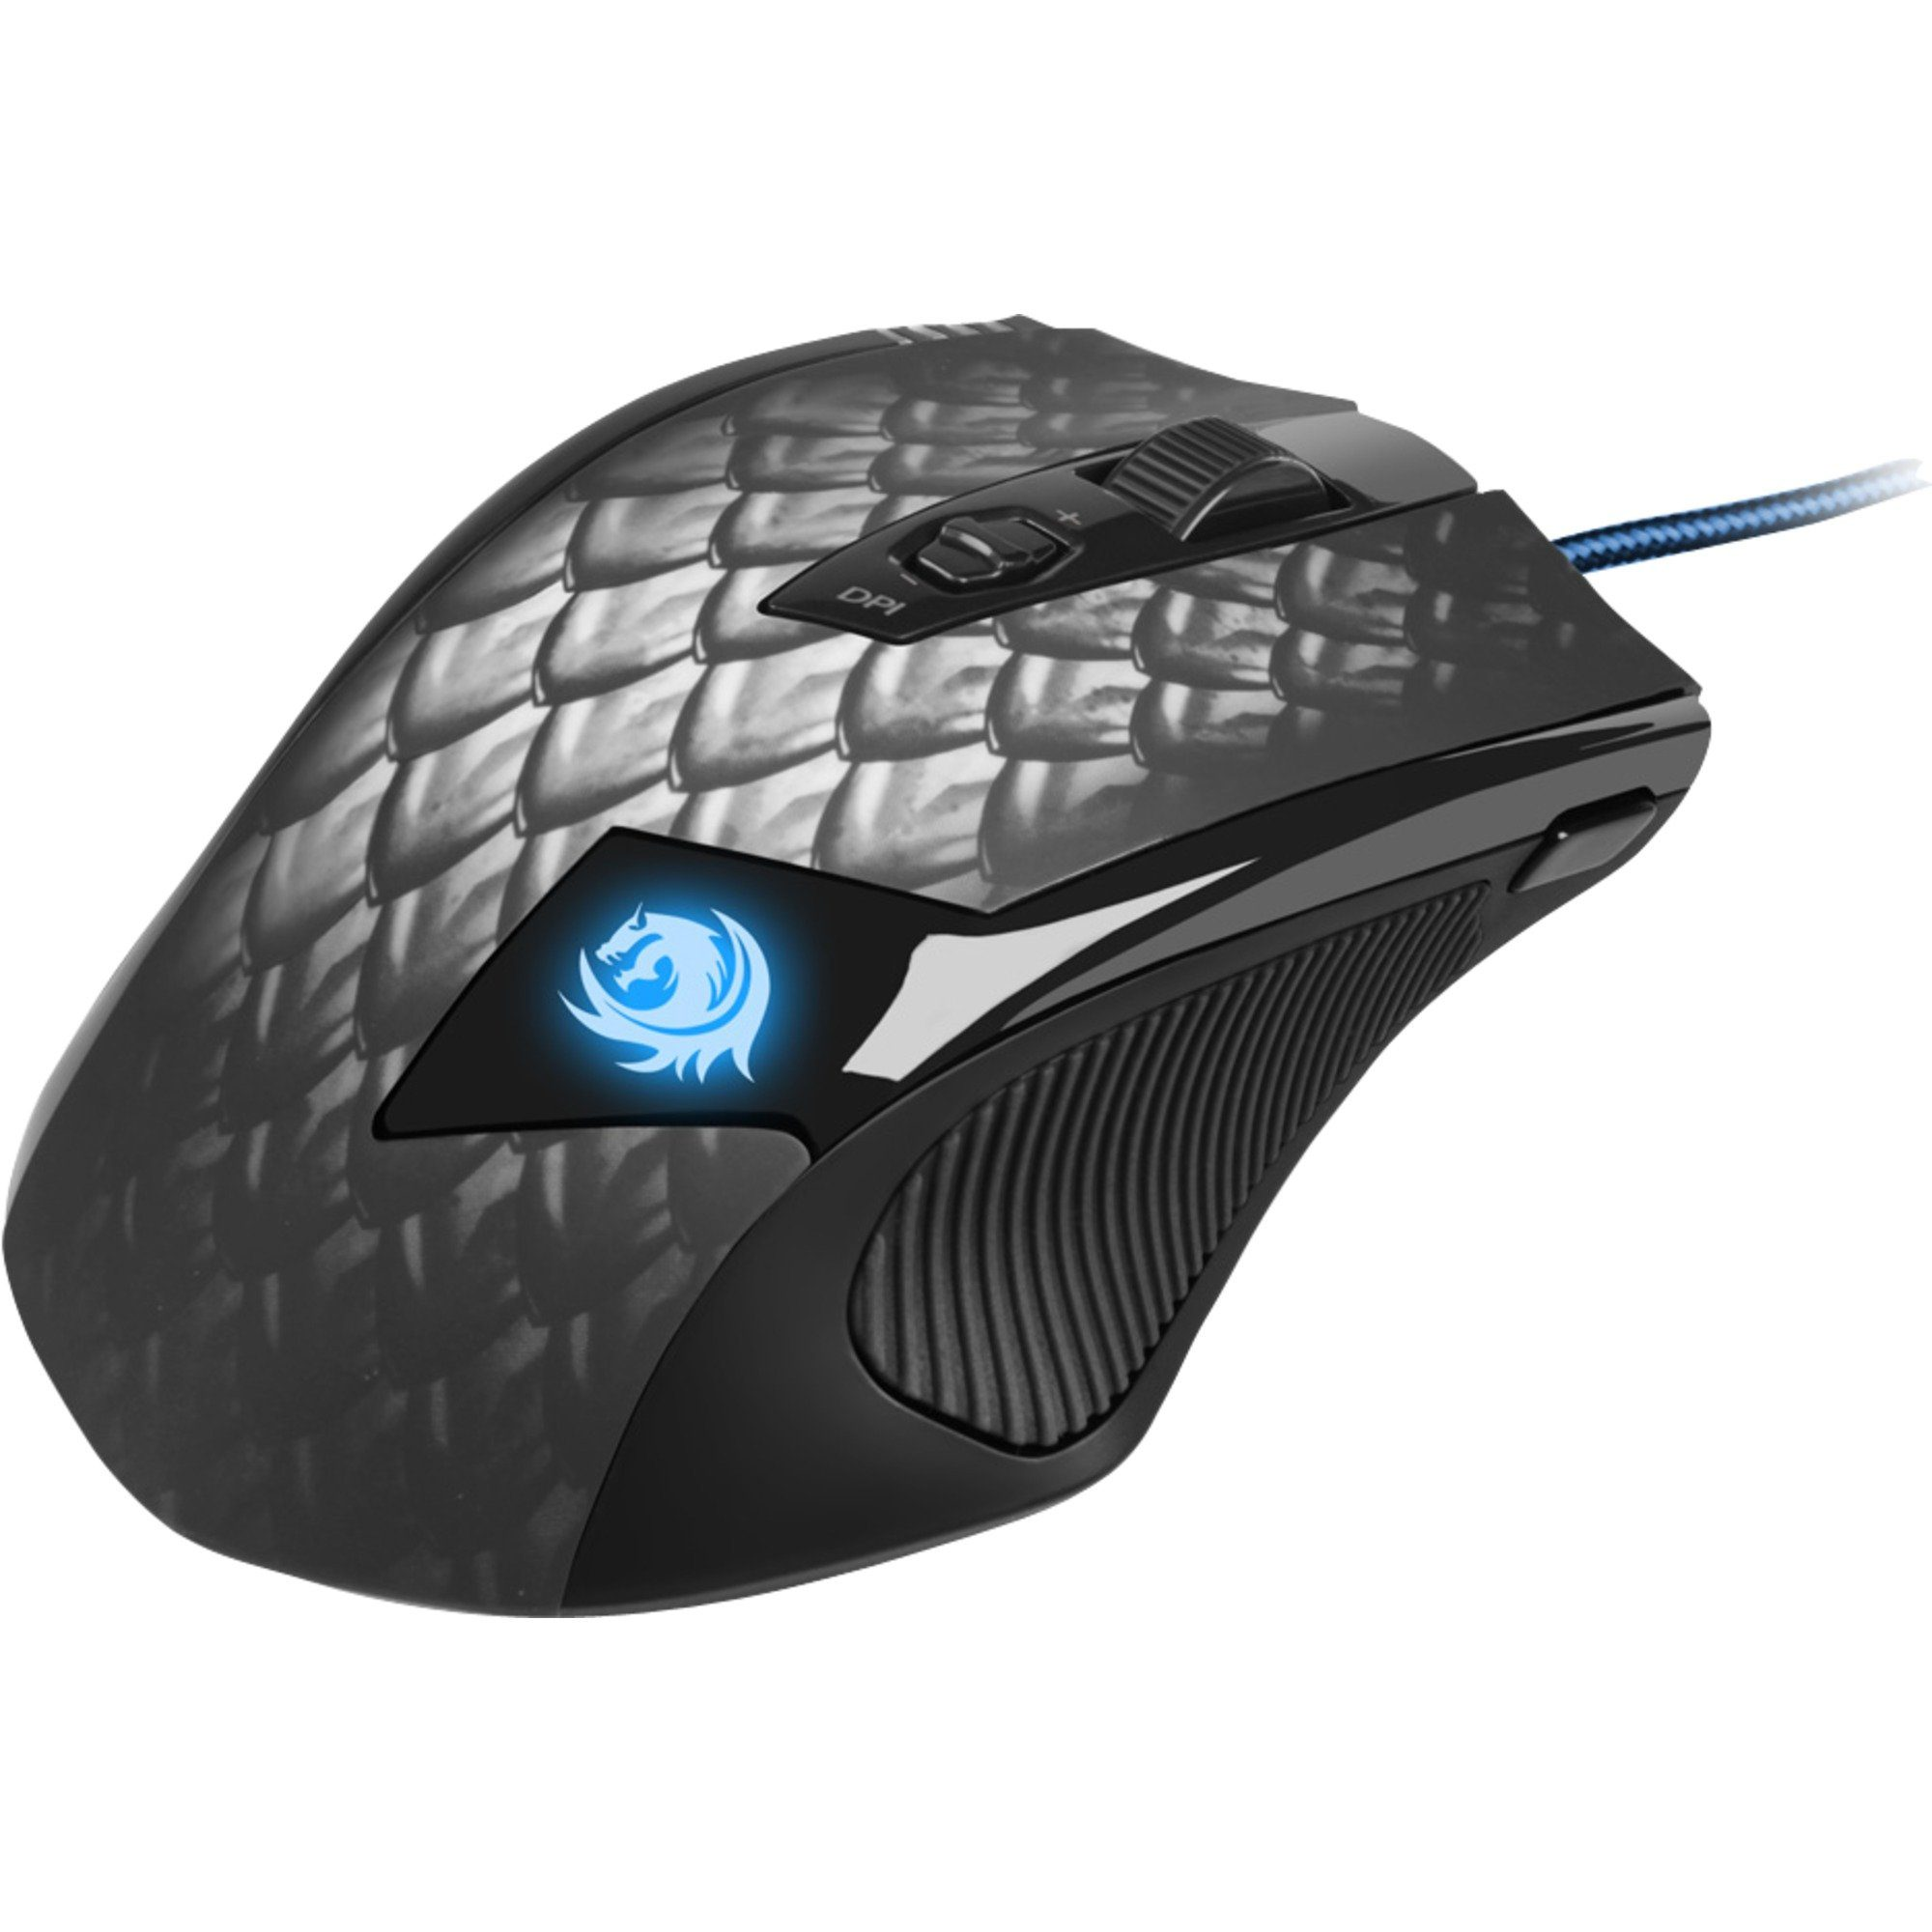 Sharkoon Maus »Drakonia Black Gaming Mouse«